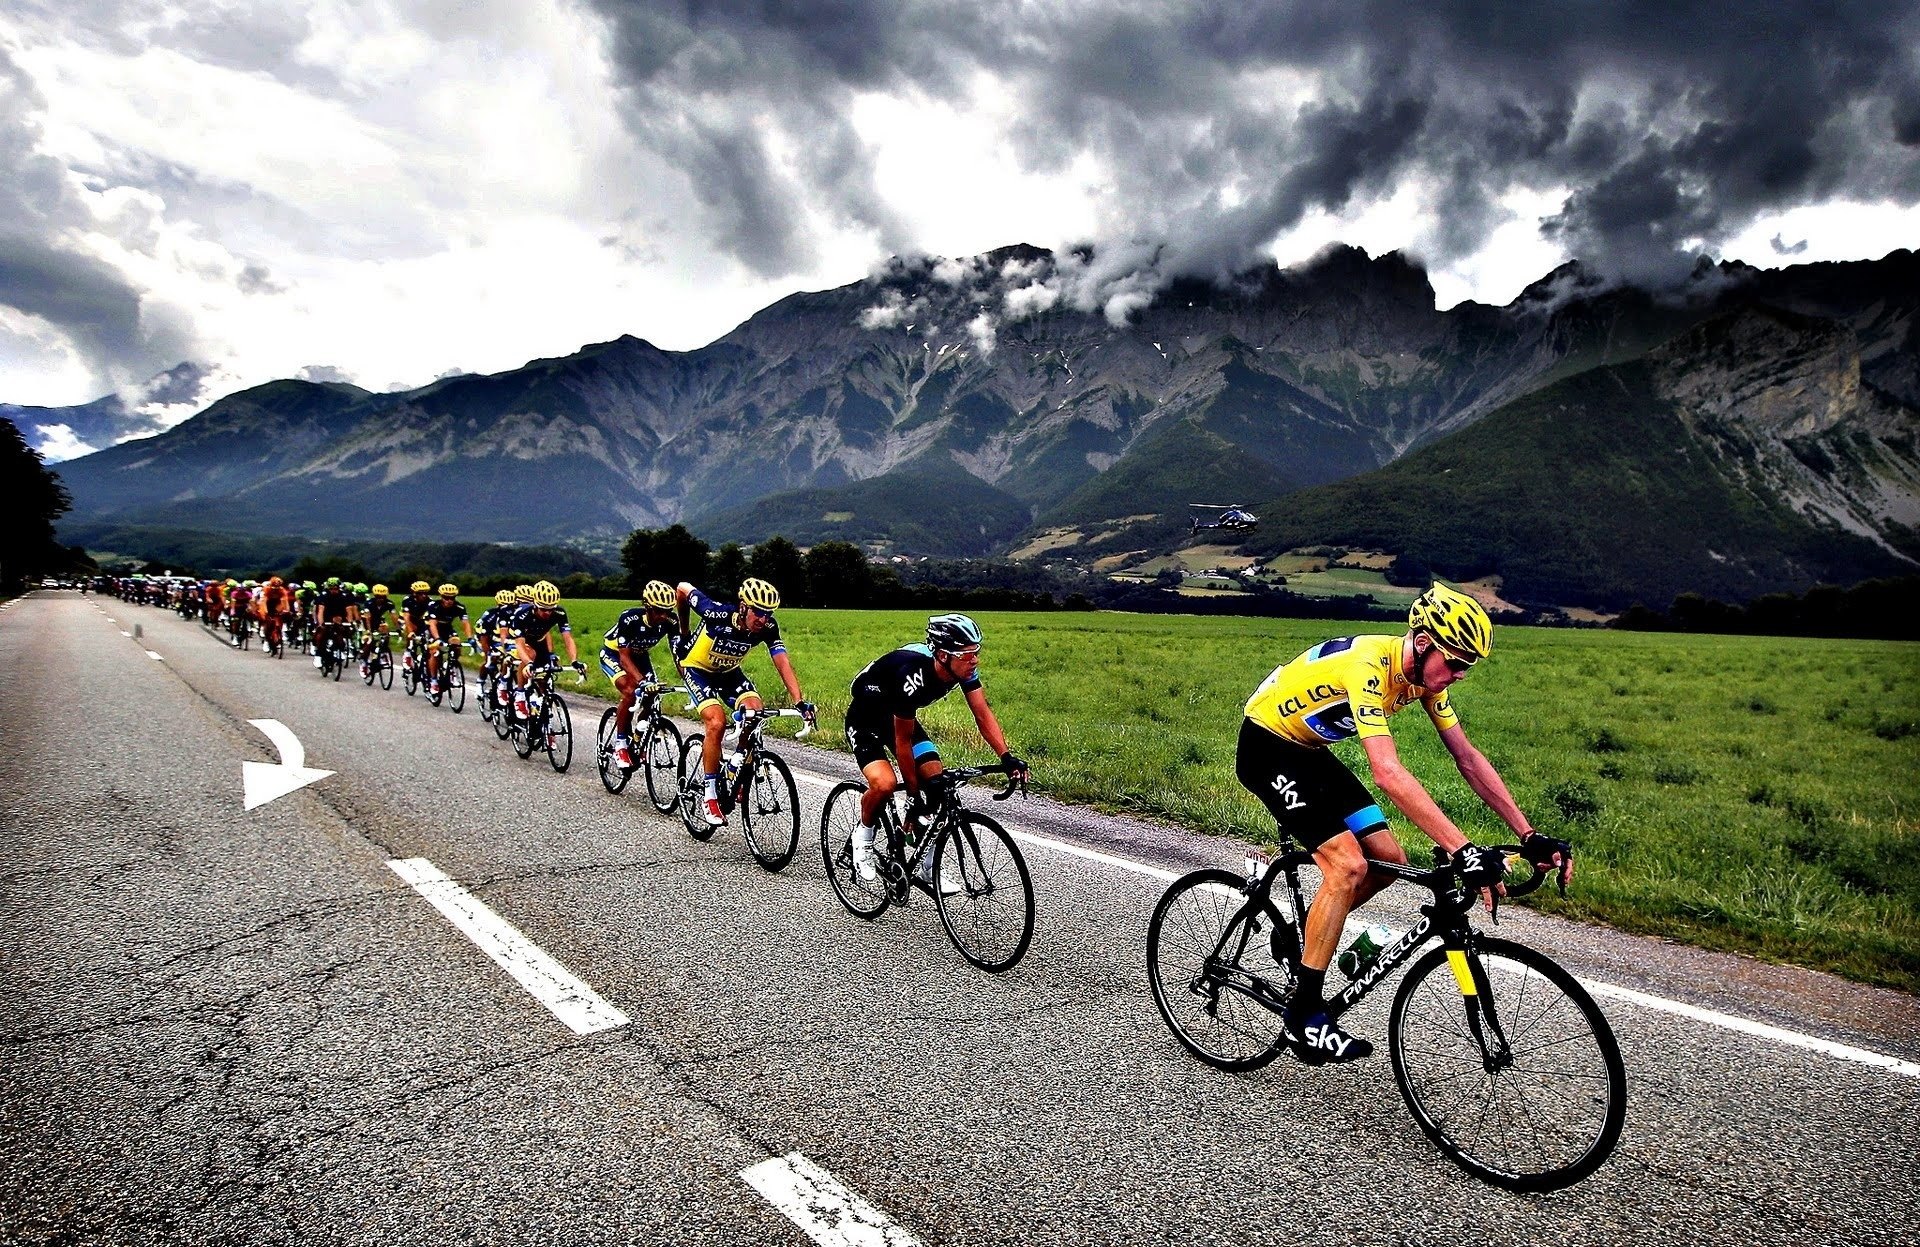 tour de france wallpapers ·①